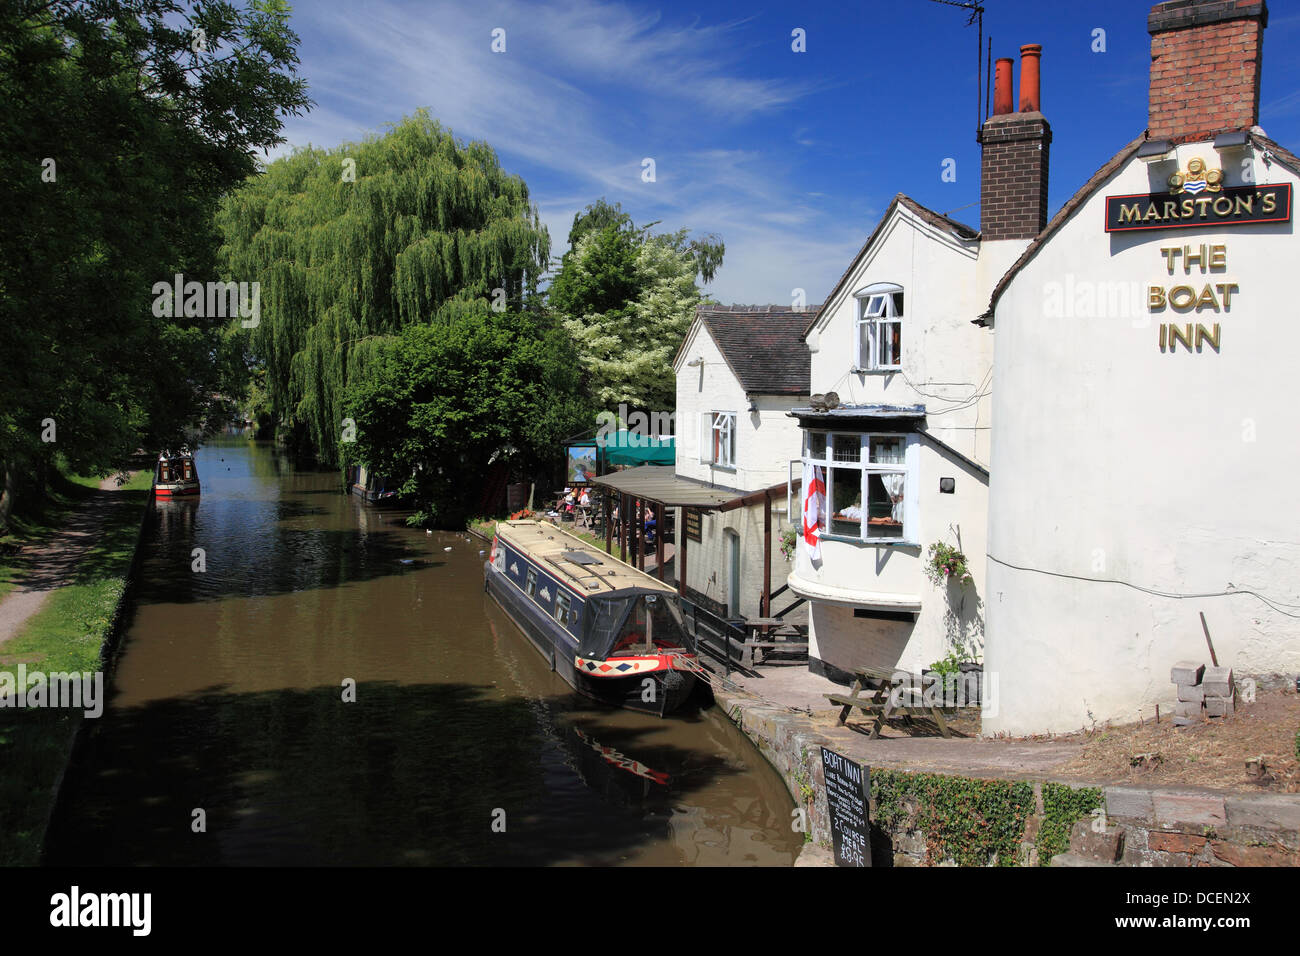 A narrowboat by the Boat Inn pub seen from Gnosall Bridge in Staffordshire on the Shropshire Union Canal - Stock Image